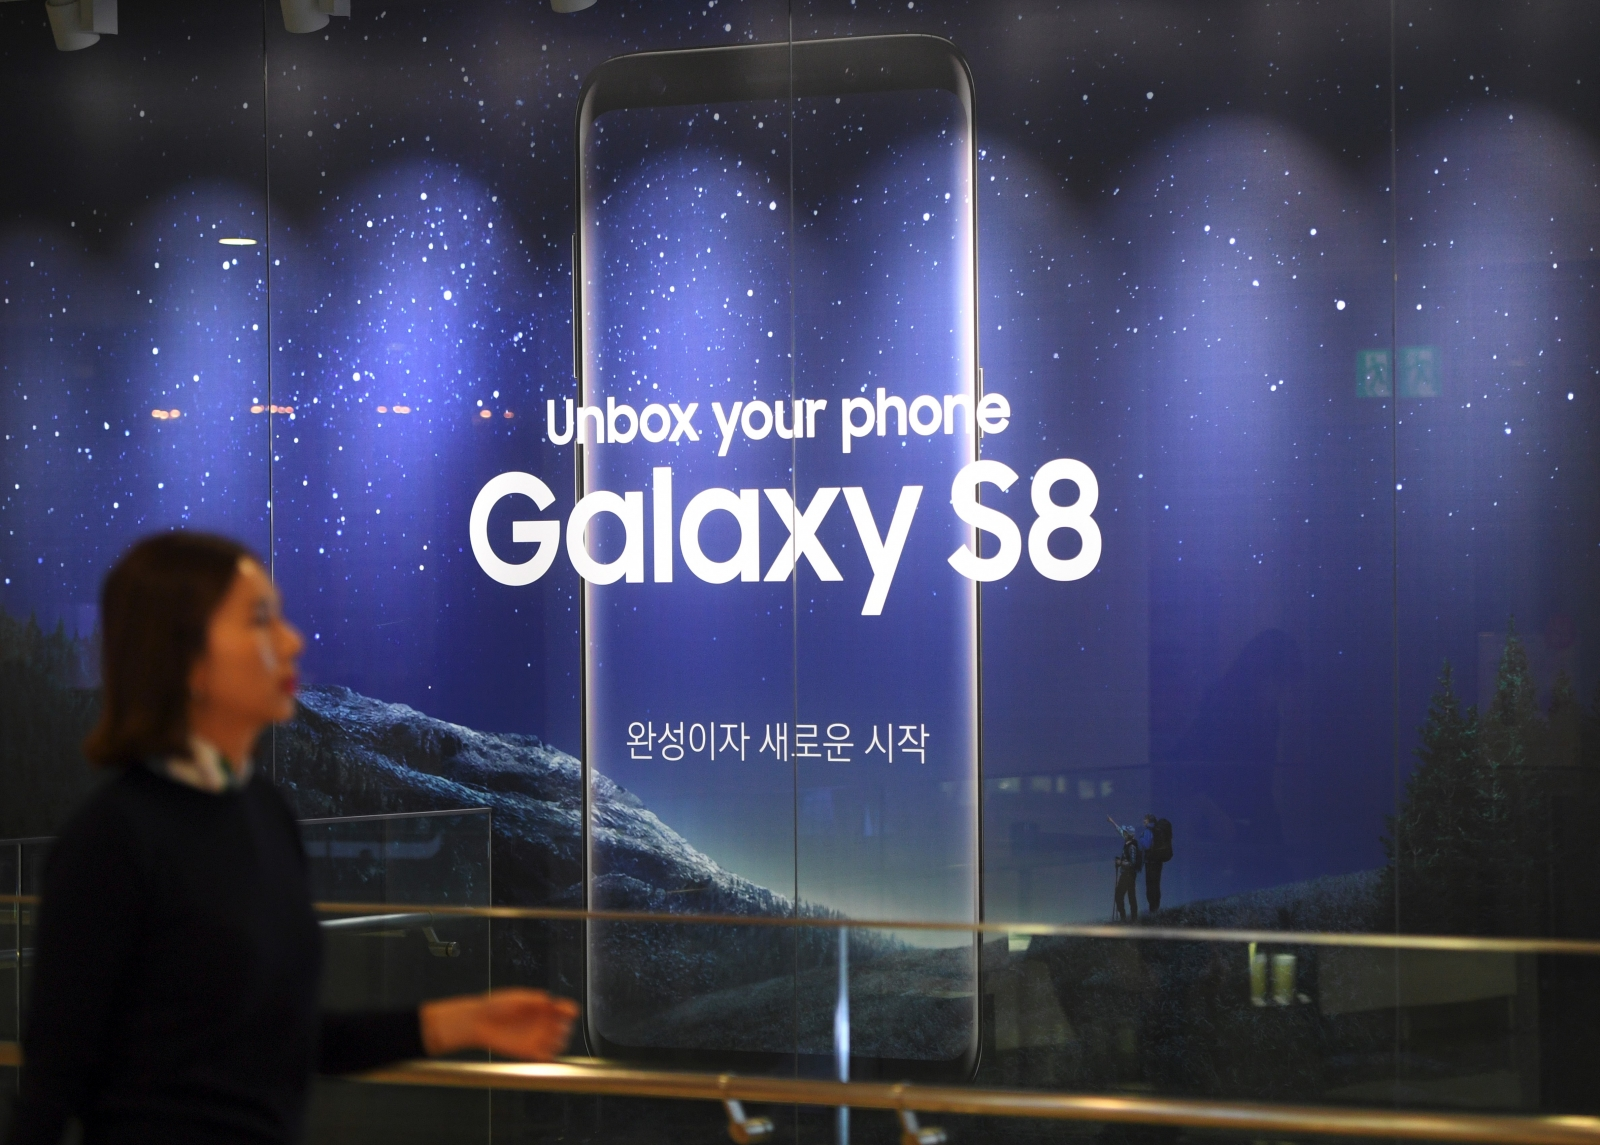 Galaxy S8 sold 1 million in SouthKorea